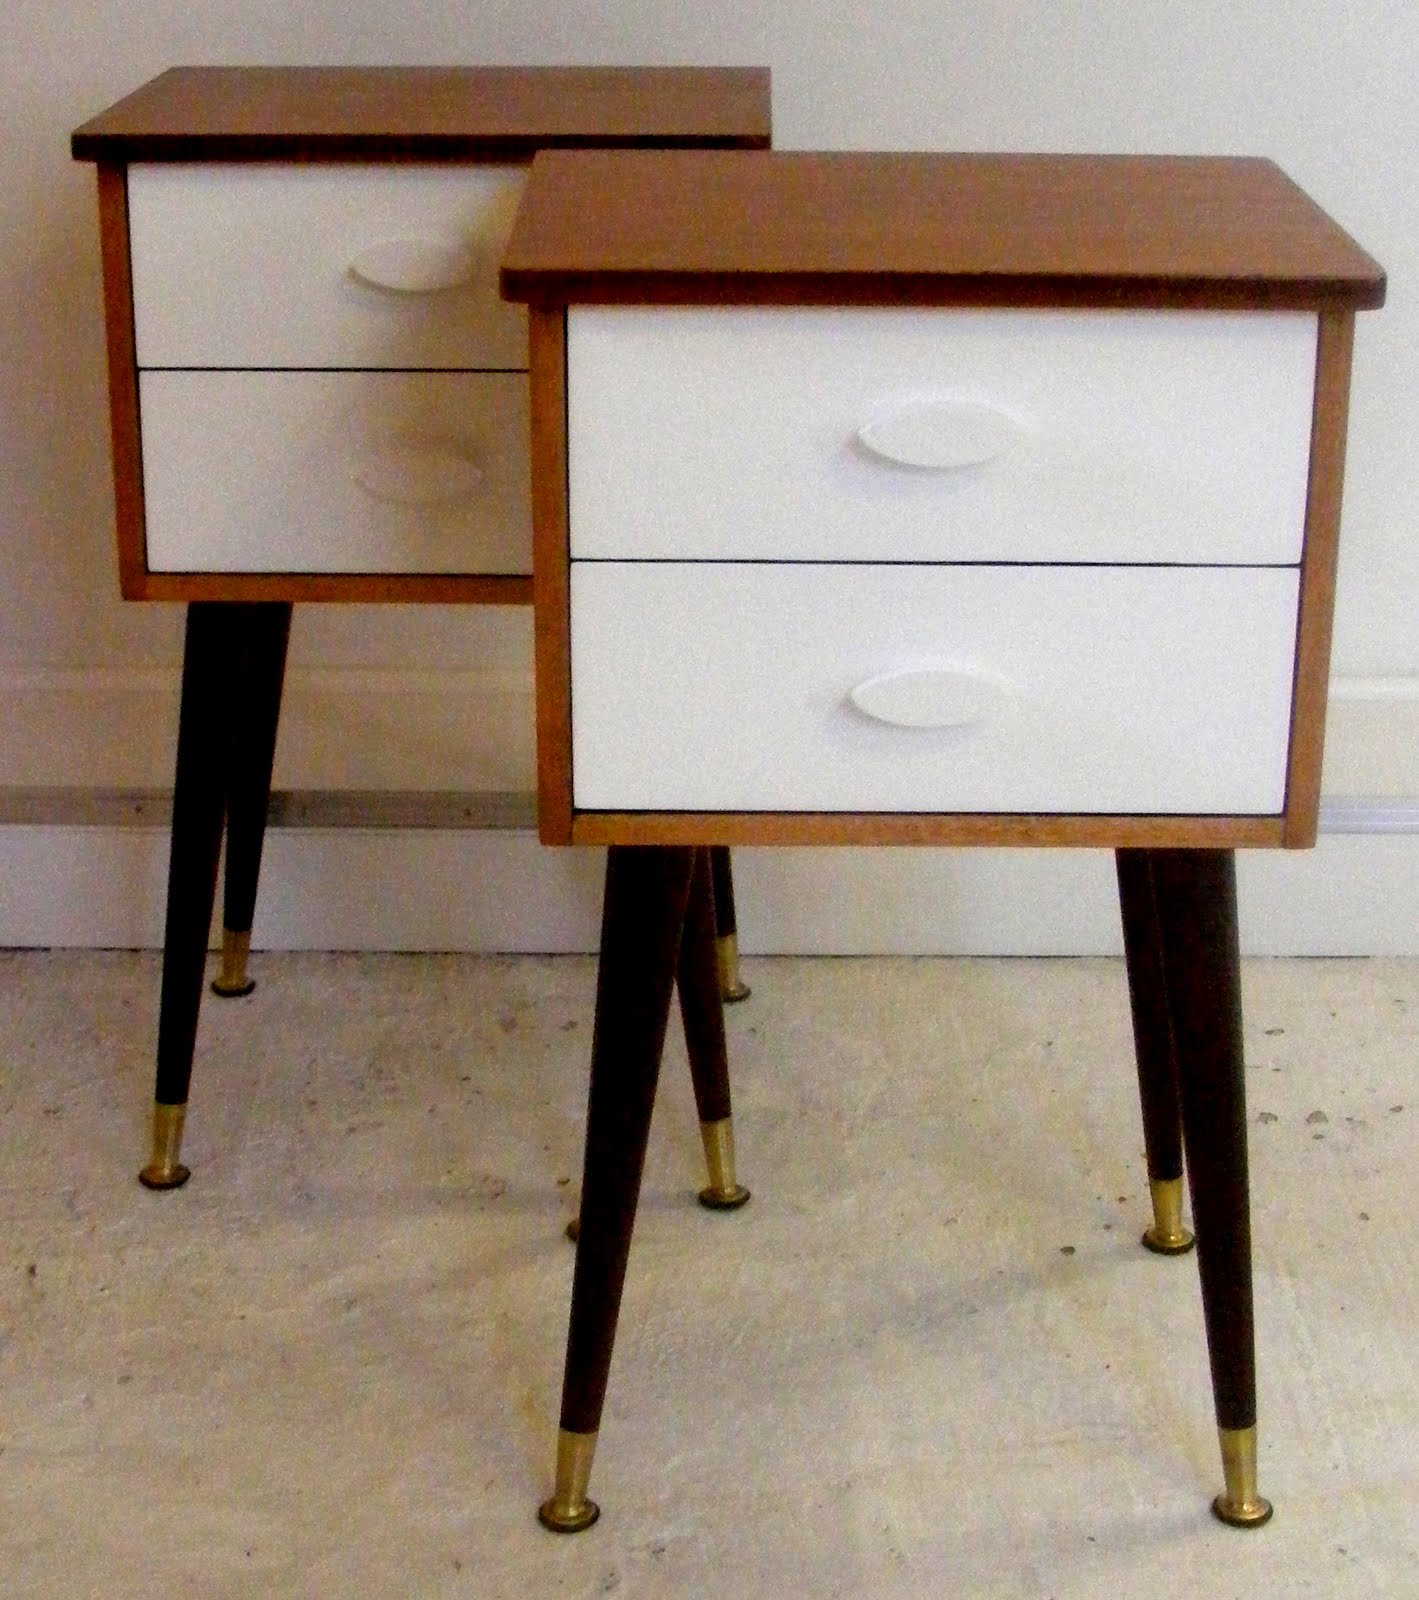 target wood side table small round with furniture bedside tables plus together accent drawer dark brown cabinet black and white marble coffee threshold stone oversized armchair